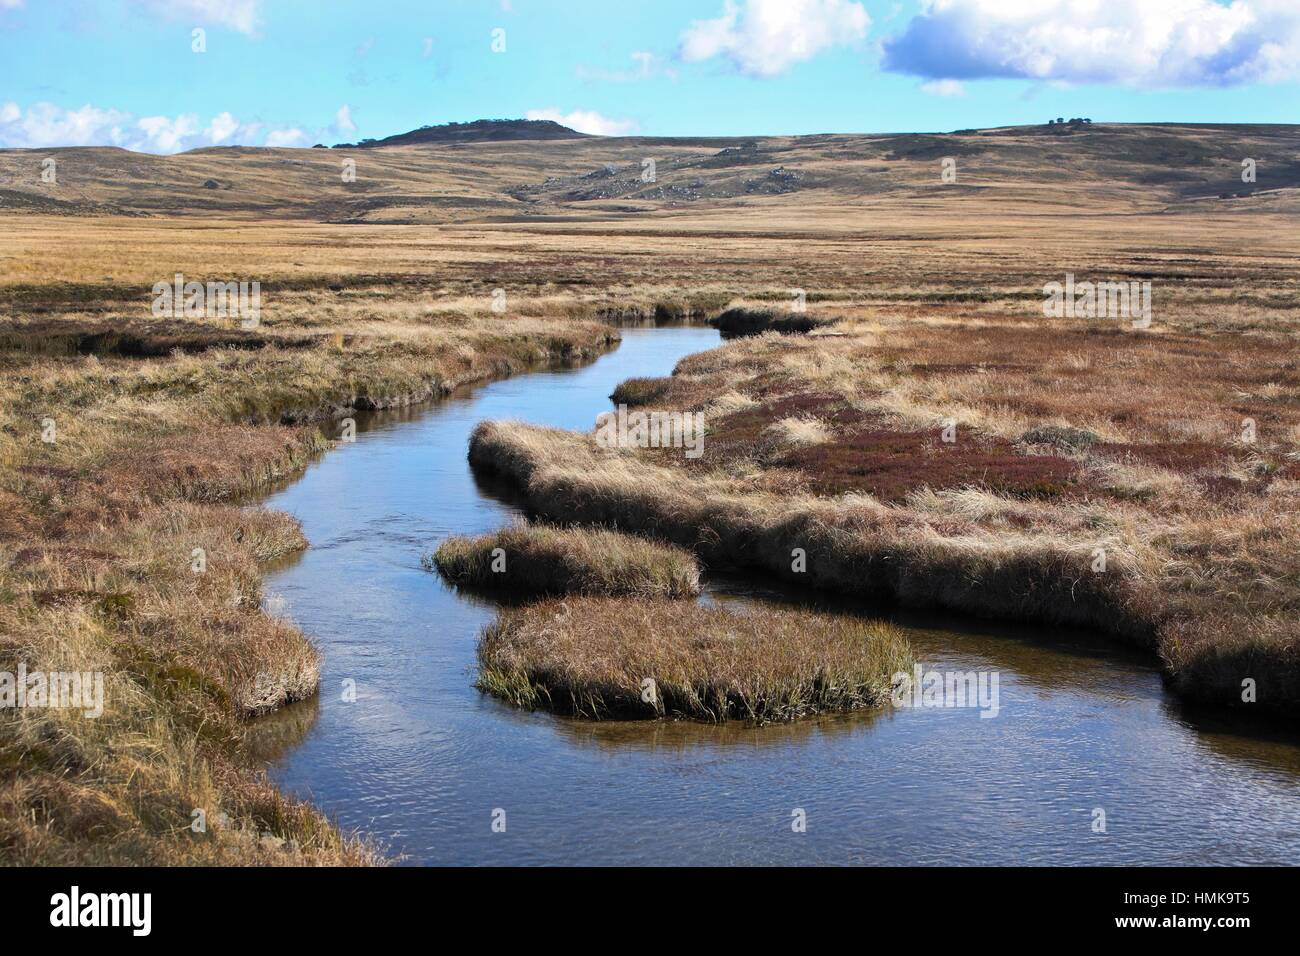 Creek at Bogong High plains in the Victorian High Country, Australia. - Stock Image